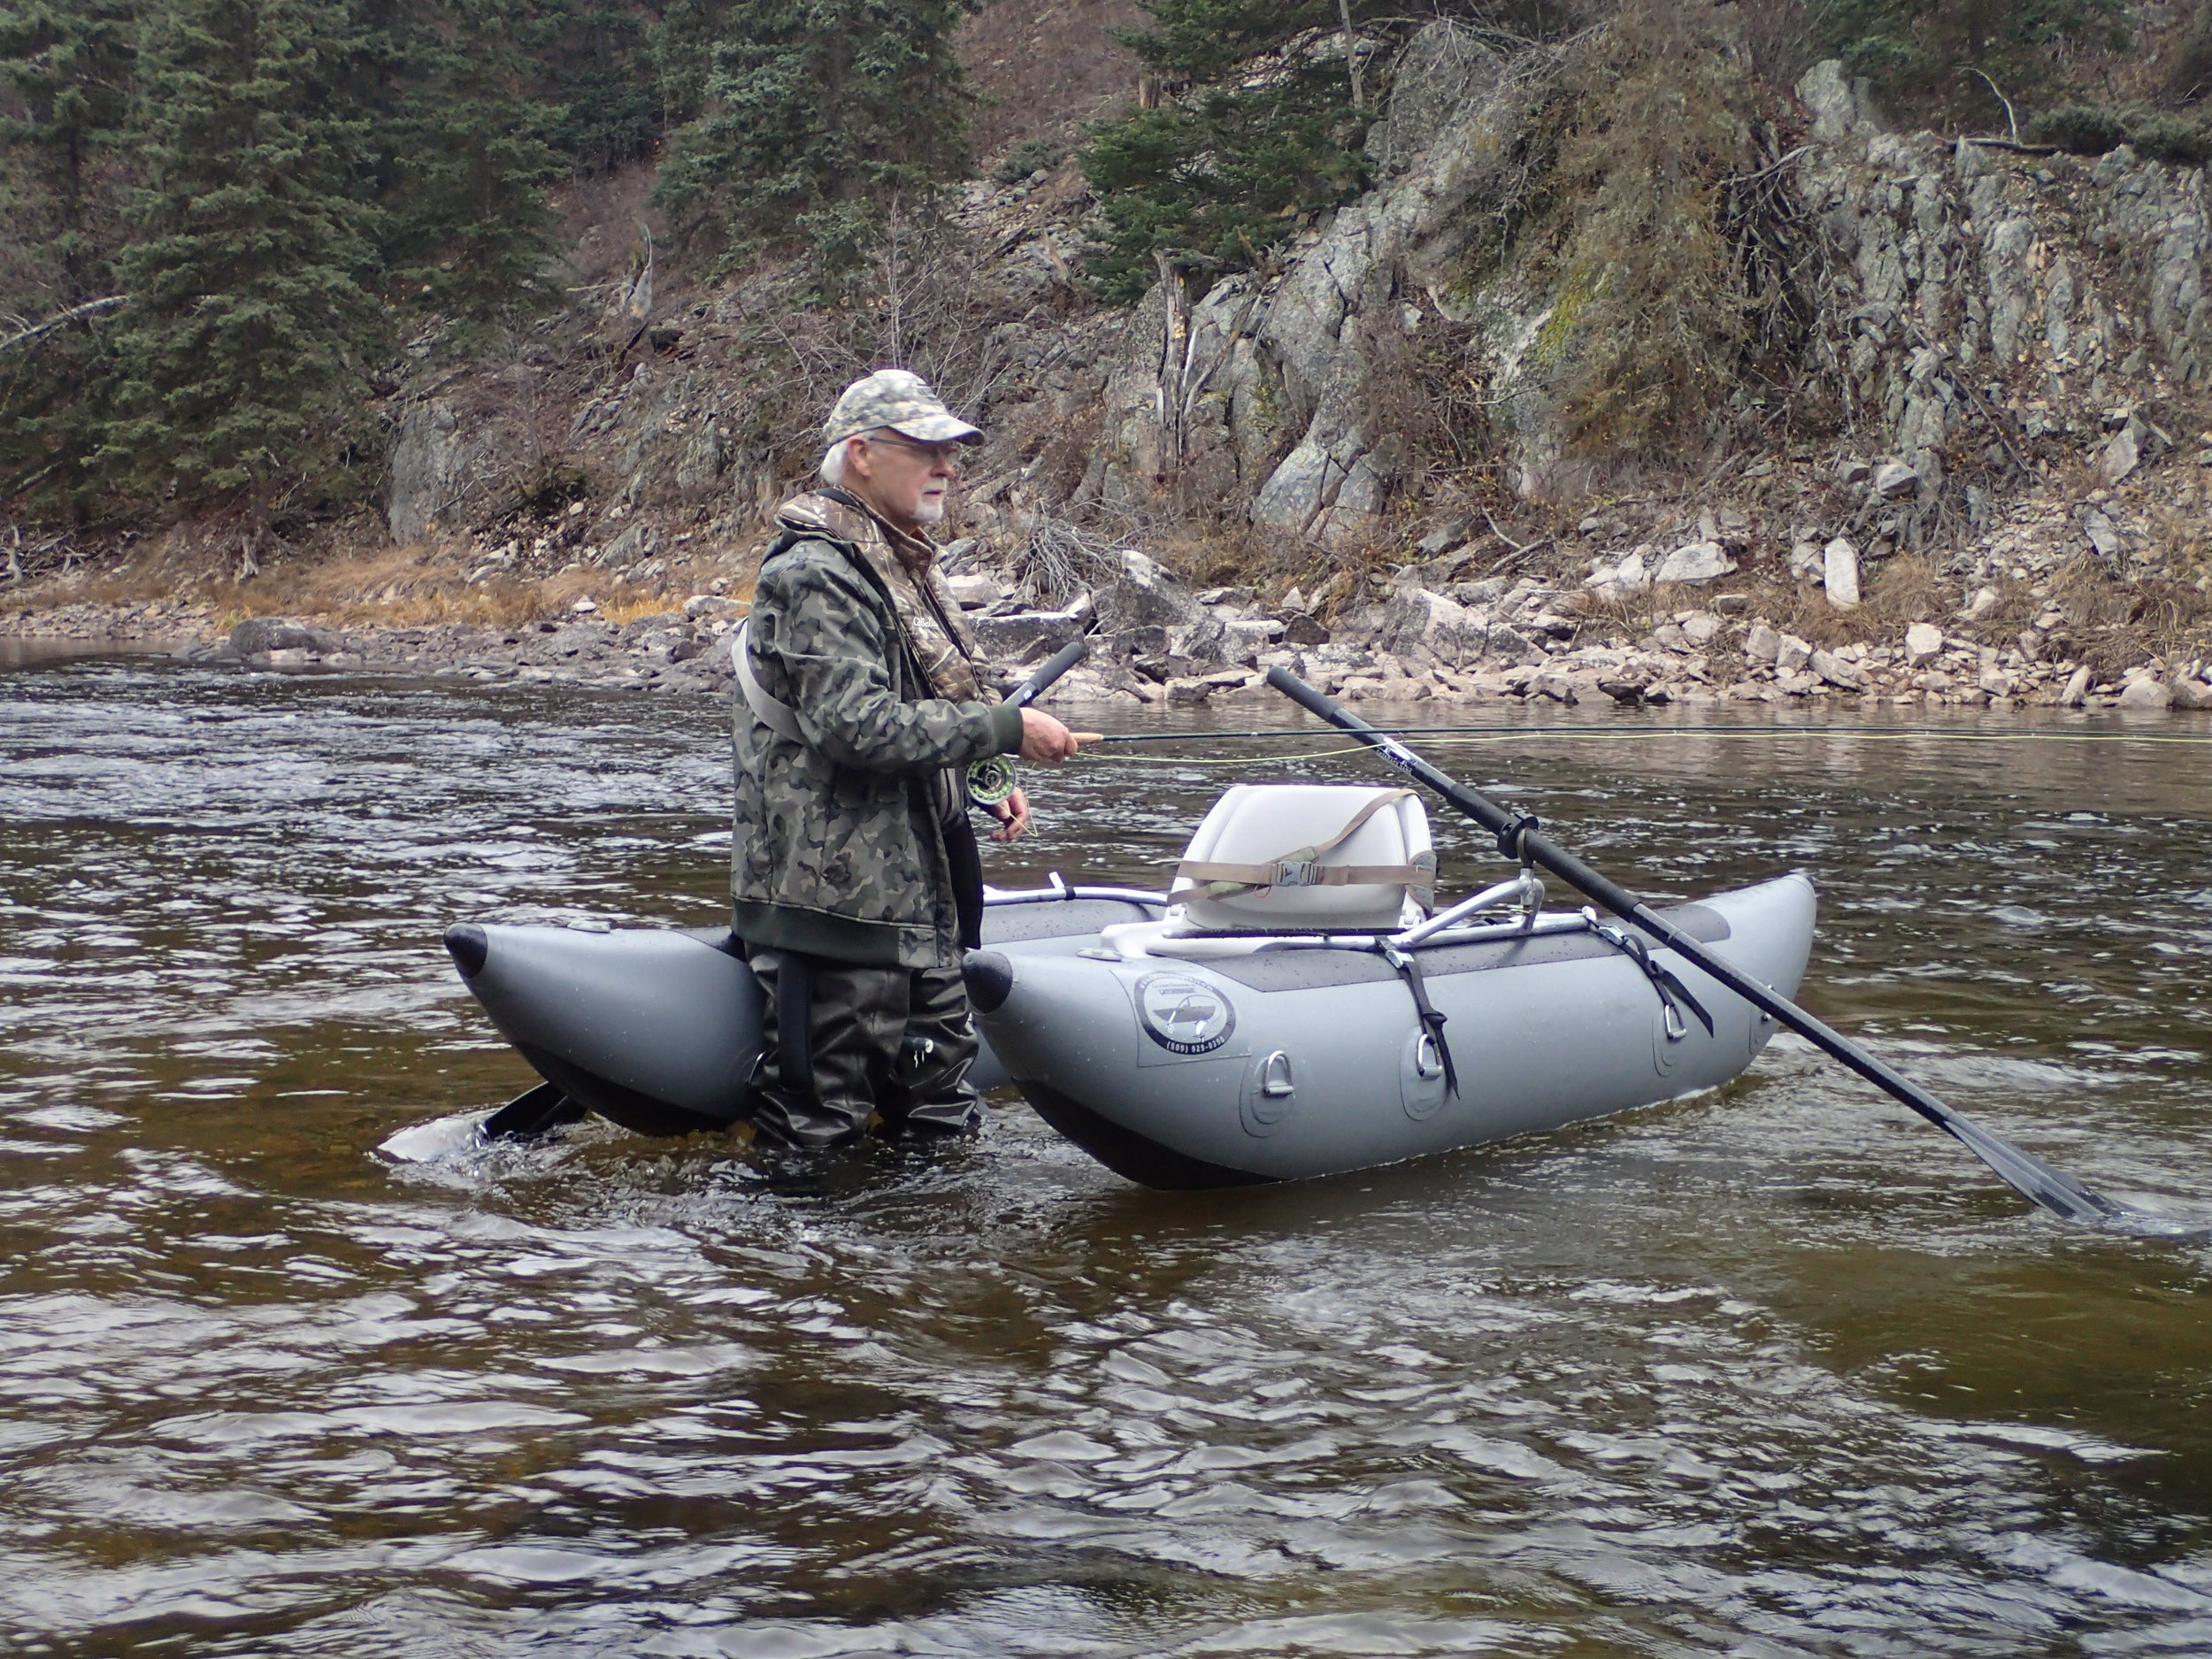 Ken fishing for rainbow trout in Canada.